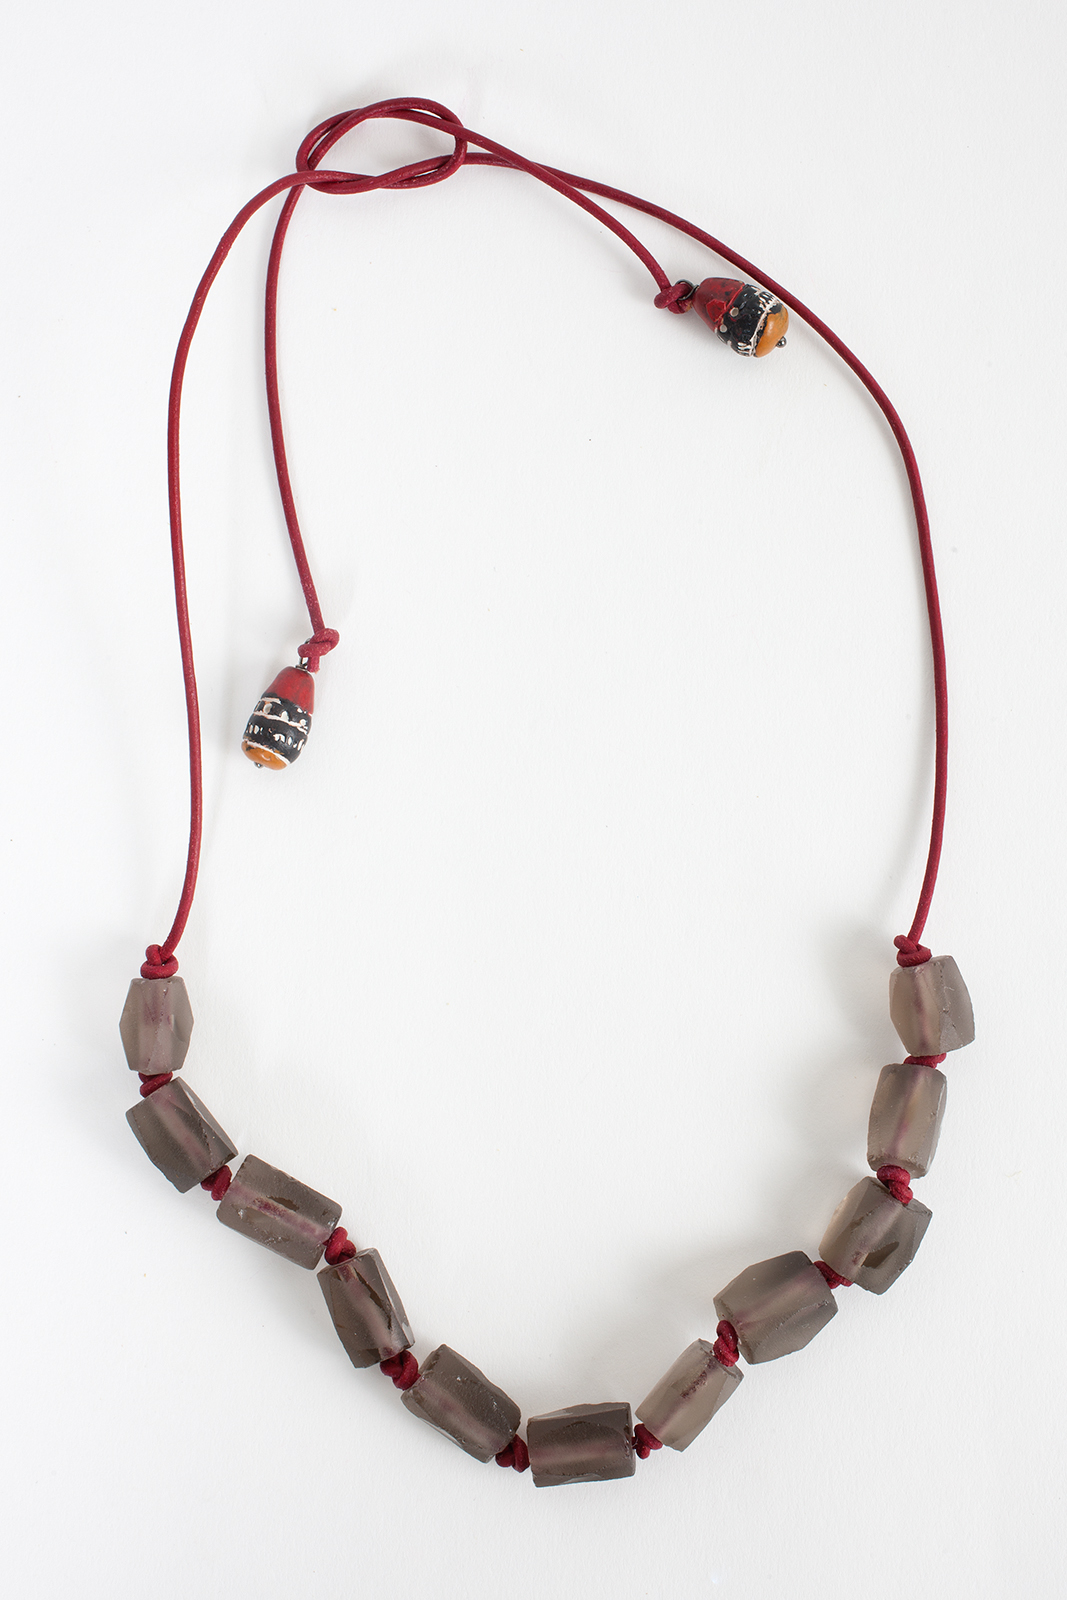 The Joshua necklace on red leather is so perfect for the MENSWEAR look. The length of this necklace is adjustable. So you decide if you prefer to wear it shortened inside your pinstripe shirt, or longer under the collar.